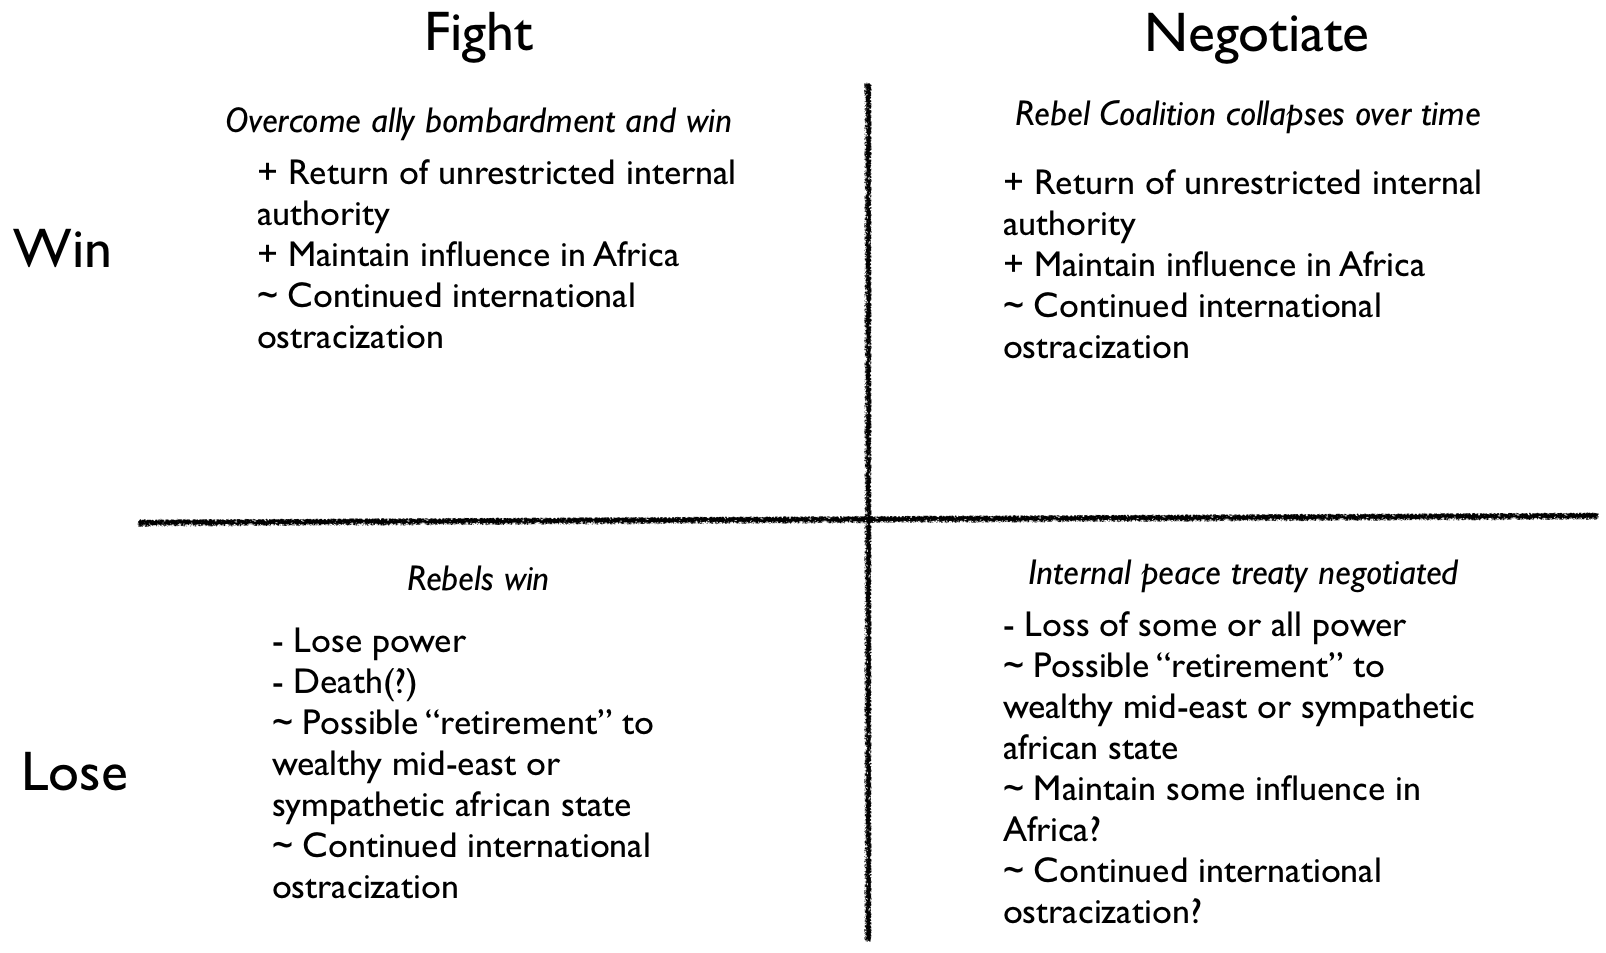 negotiation outcome matrix Any negotiation--whether it involves settling on the price of a product or service, agreeing to the terms of a job offer, or simply deciding on a bedtime for your children--ends in one of five possible outcomes: (1) lose/lose, in which neither party achieves his goals (2) lose/win or (3) win/lose, in which one party achieves her goals and the other does not (4) no outcome, in which neither party wins or loses and (5) win/win, in which the goals of both parties are met.